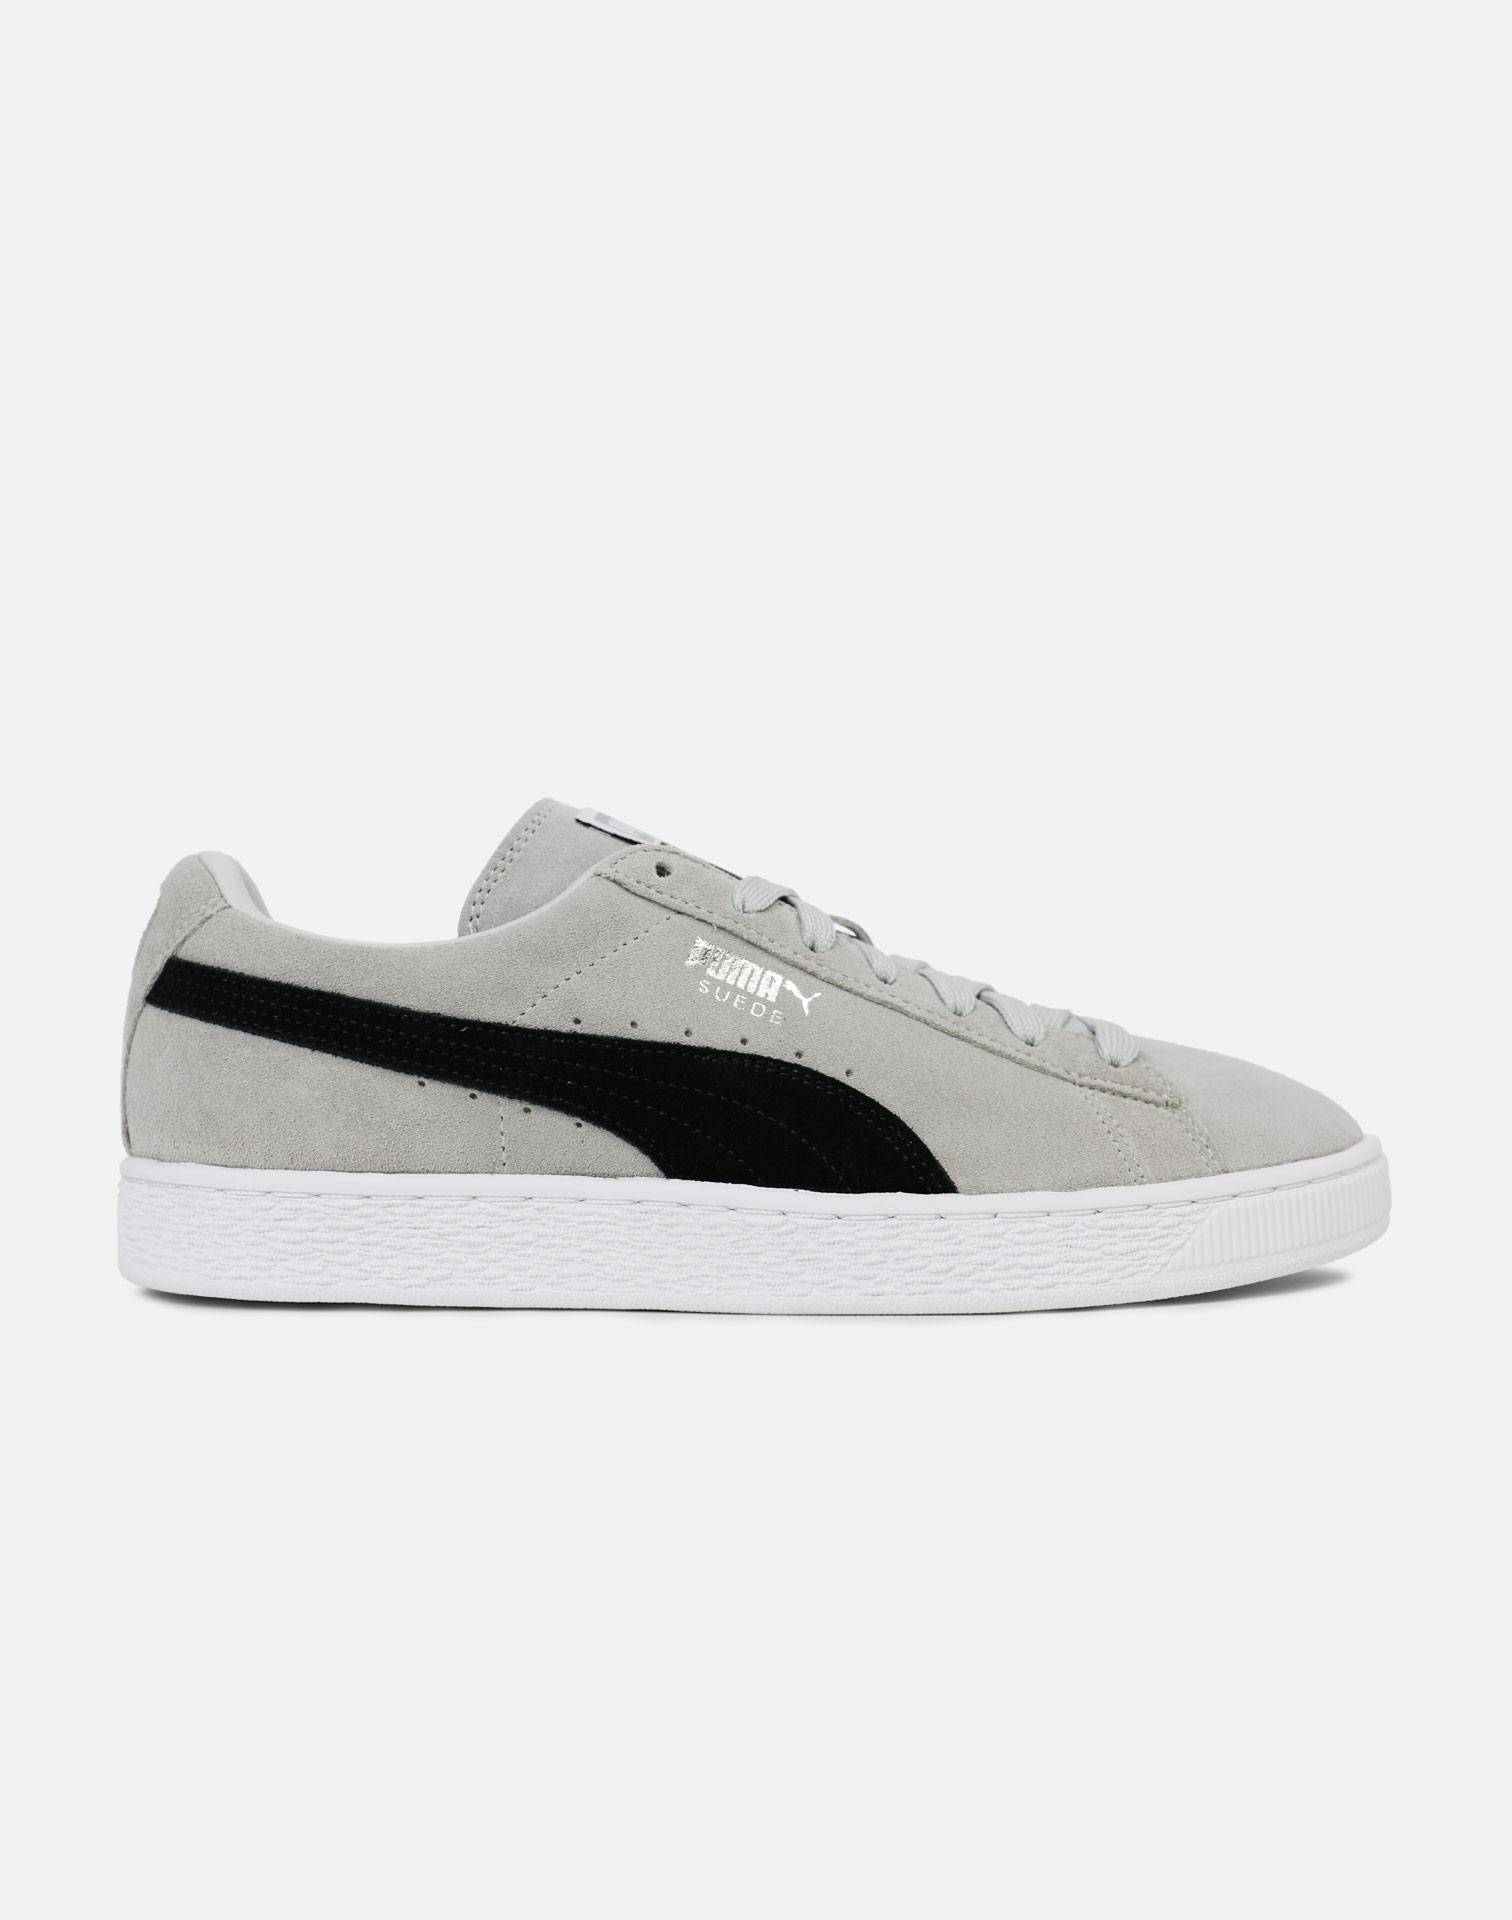 78eaa6f5a877 Lyst - Puma Suede Classic + in Gray for Men